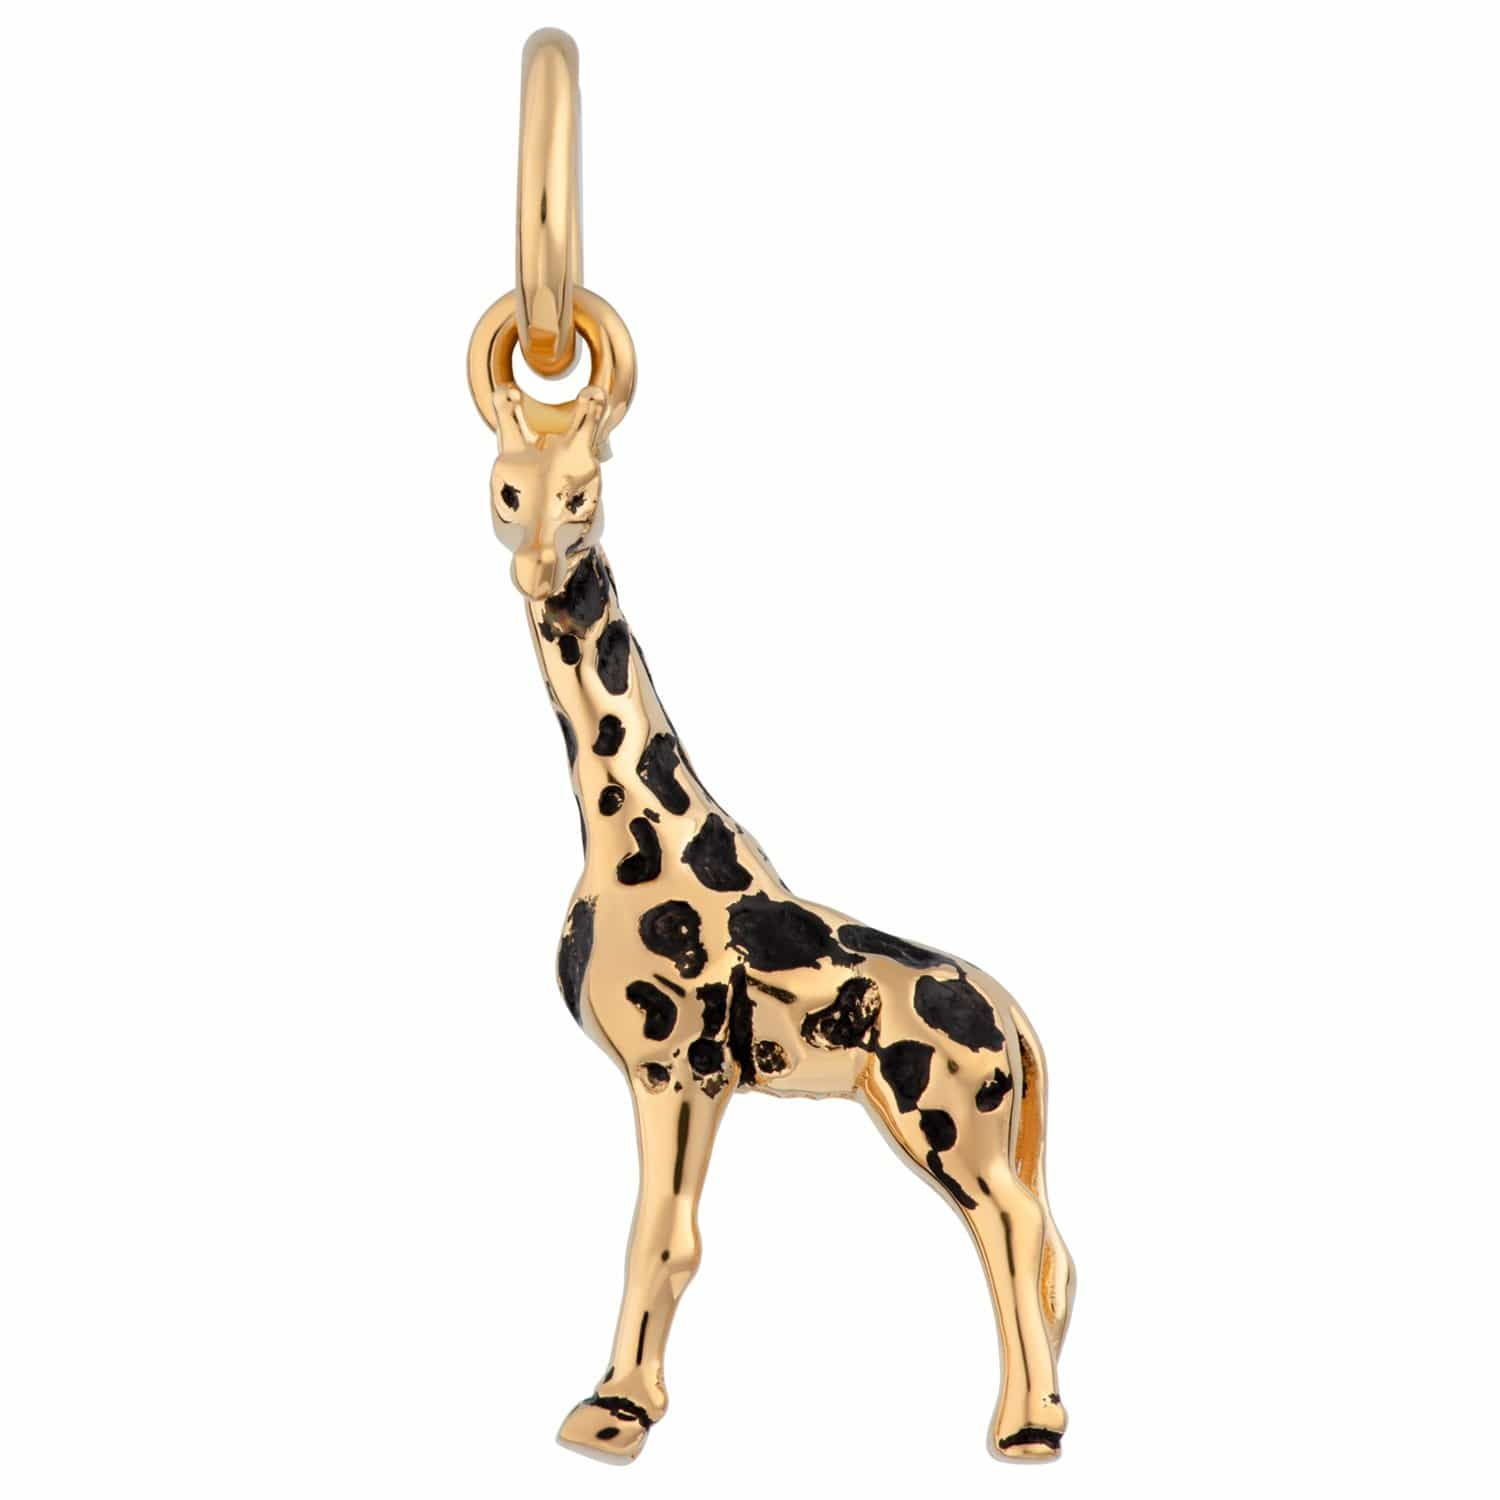 Gold Plated Giraffe Charm - Lily Charmed